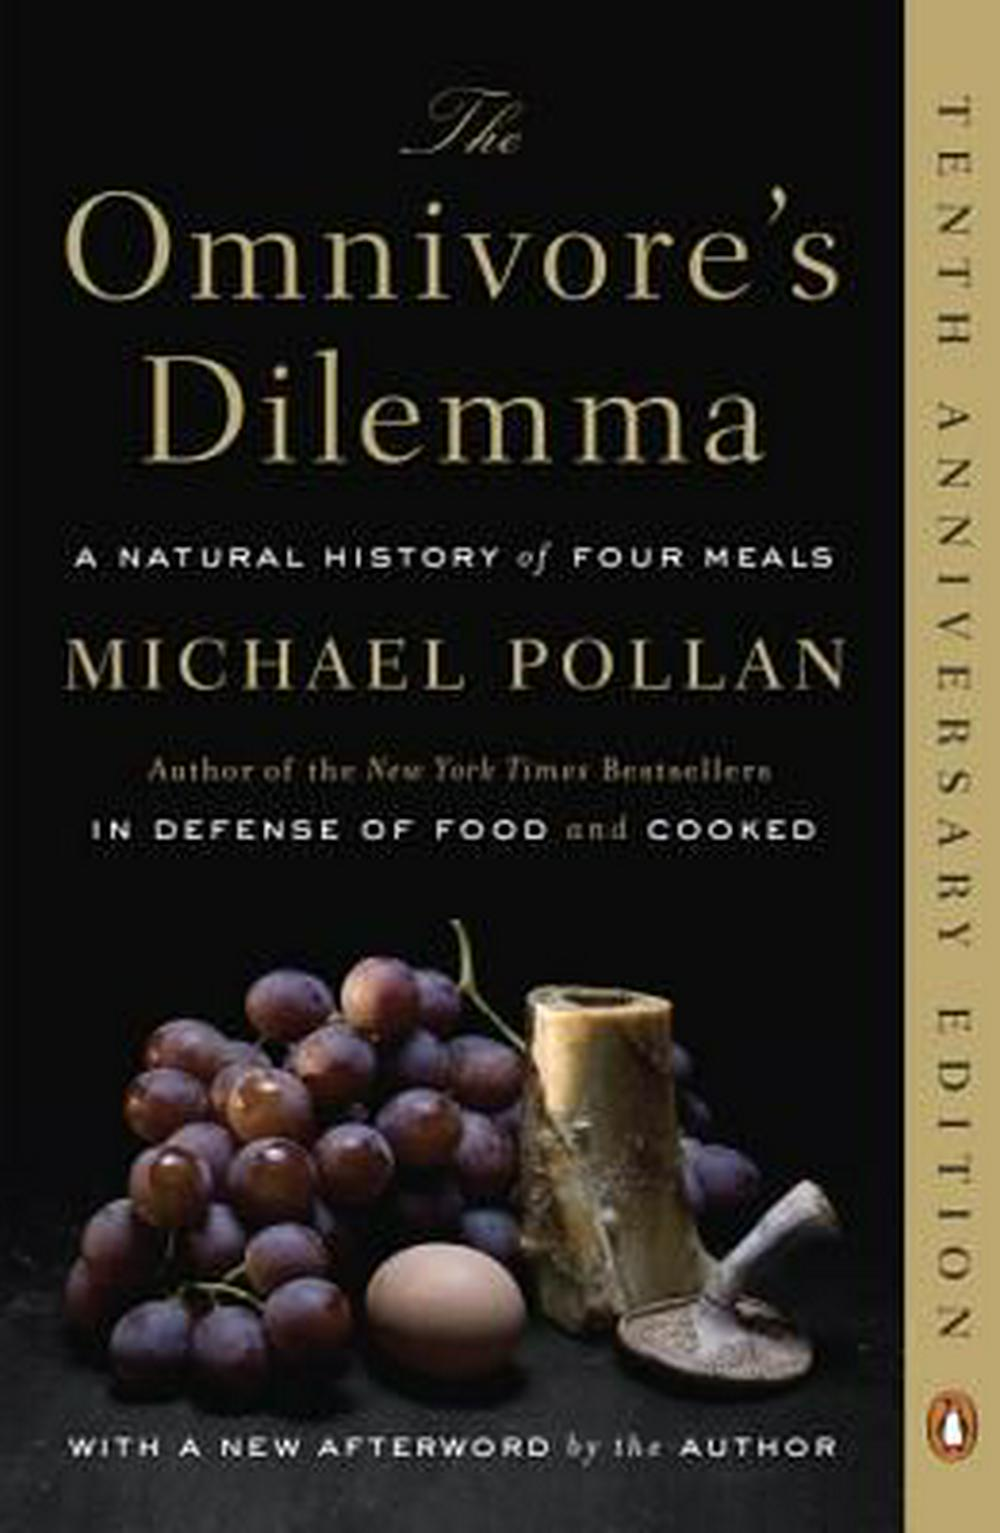 The Omnivore's Dilemma: A Natural History of Four Meals by Michael Pollan, ISBN: 9780143038580